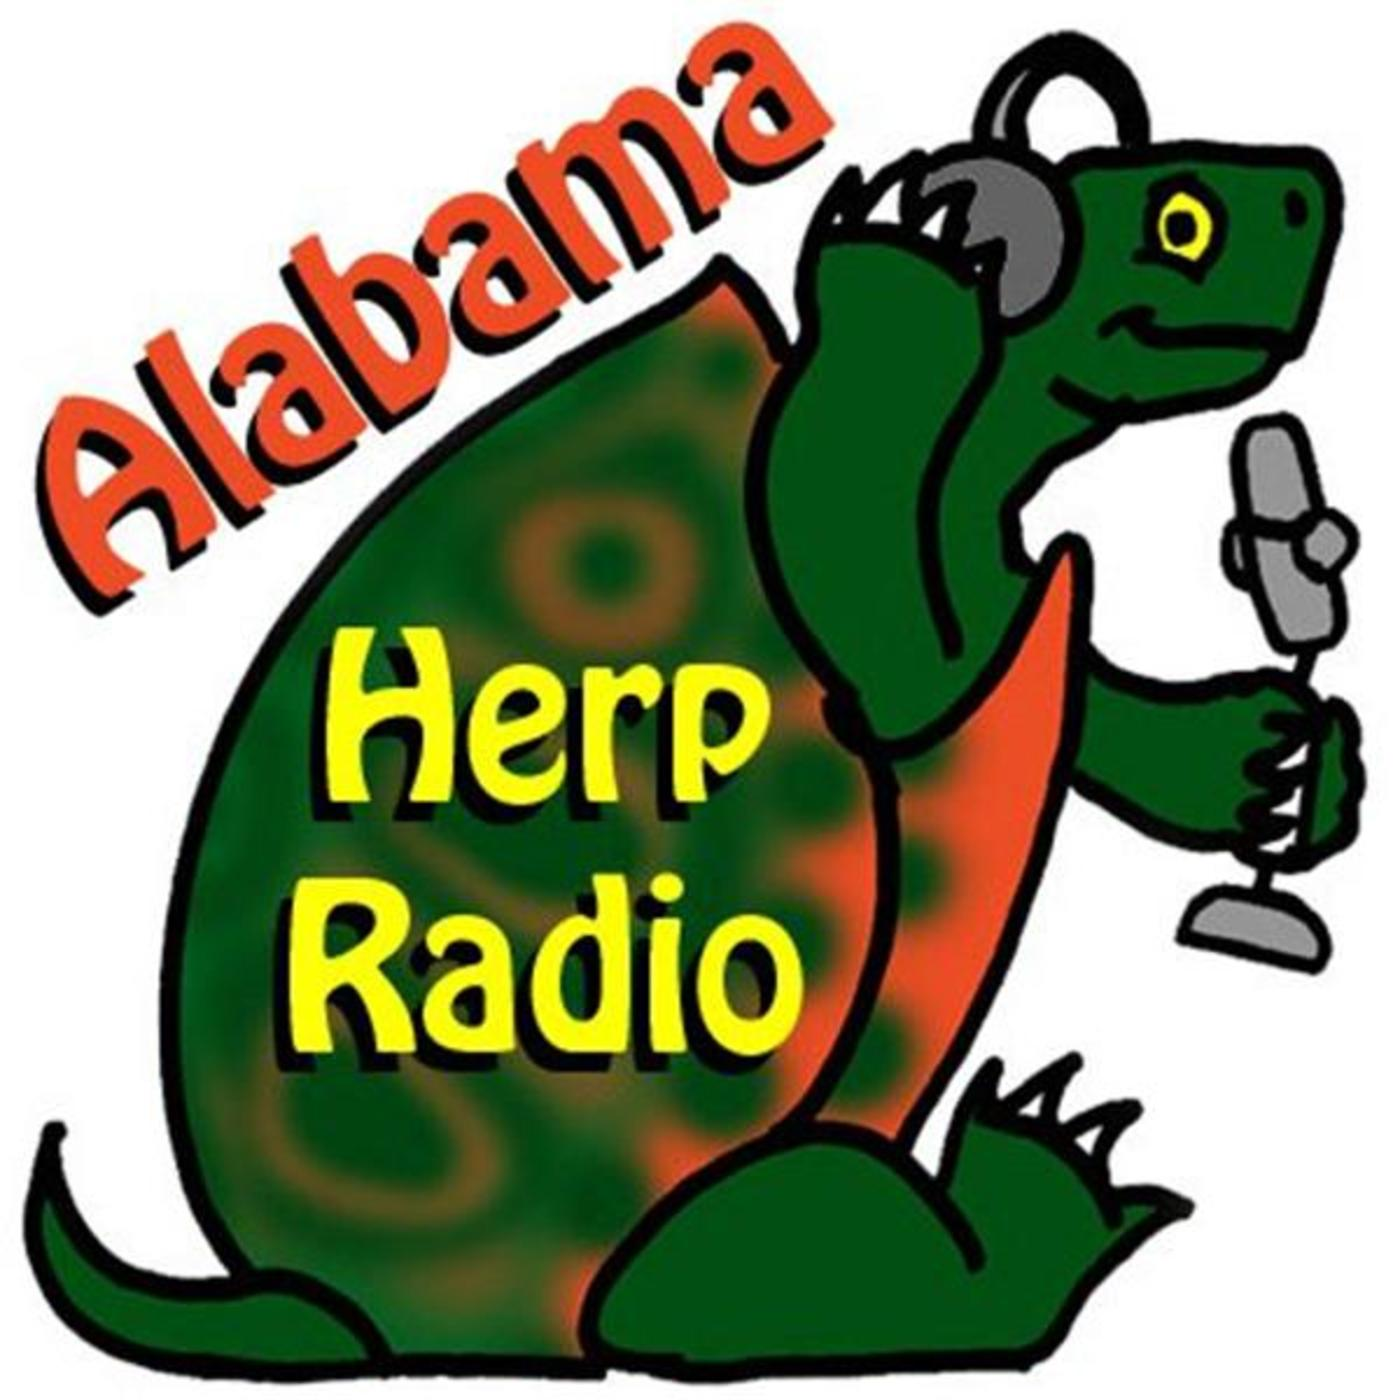 Alabama Herp Radio